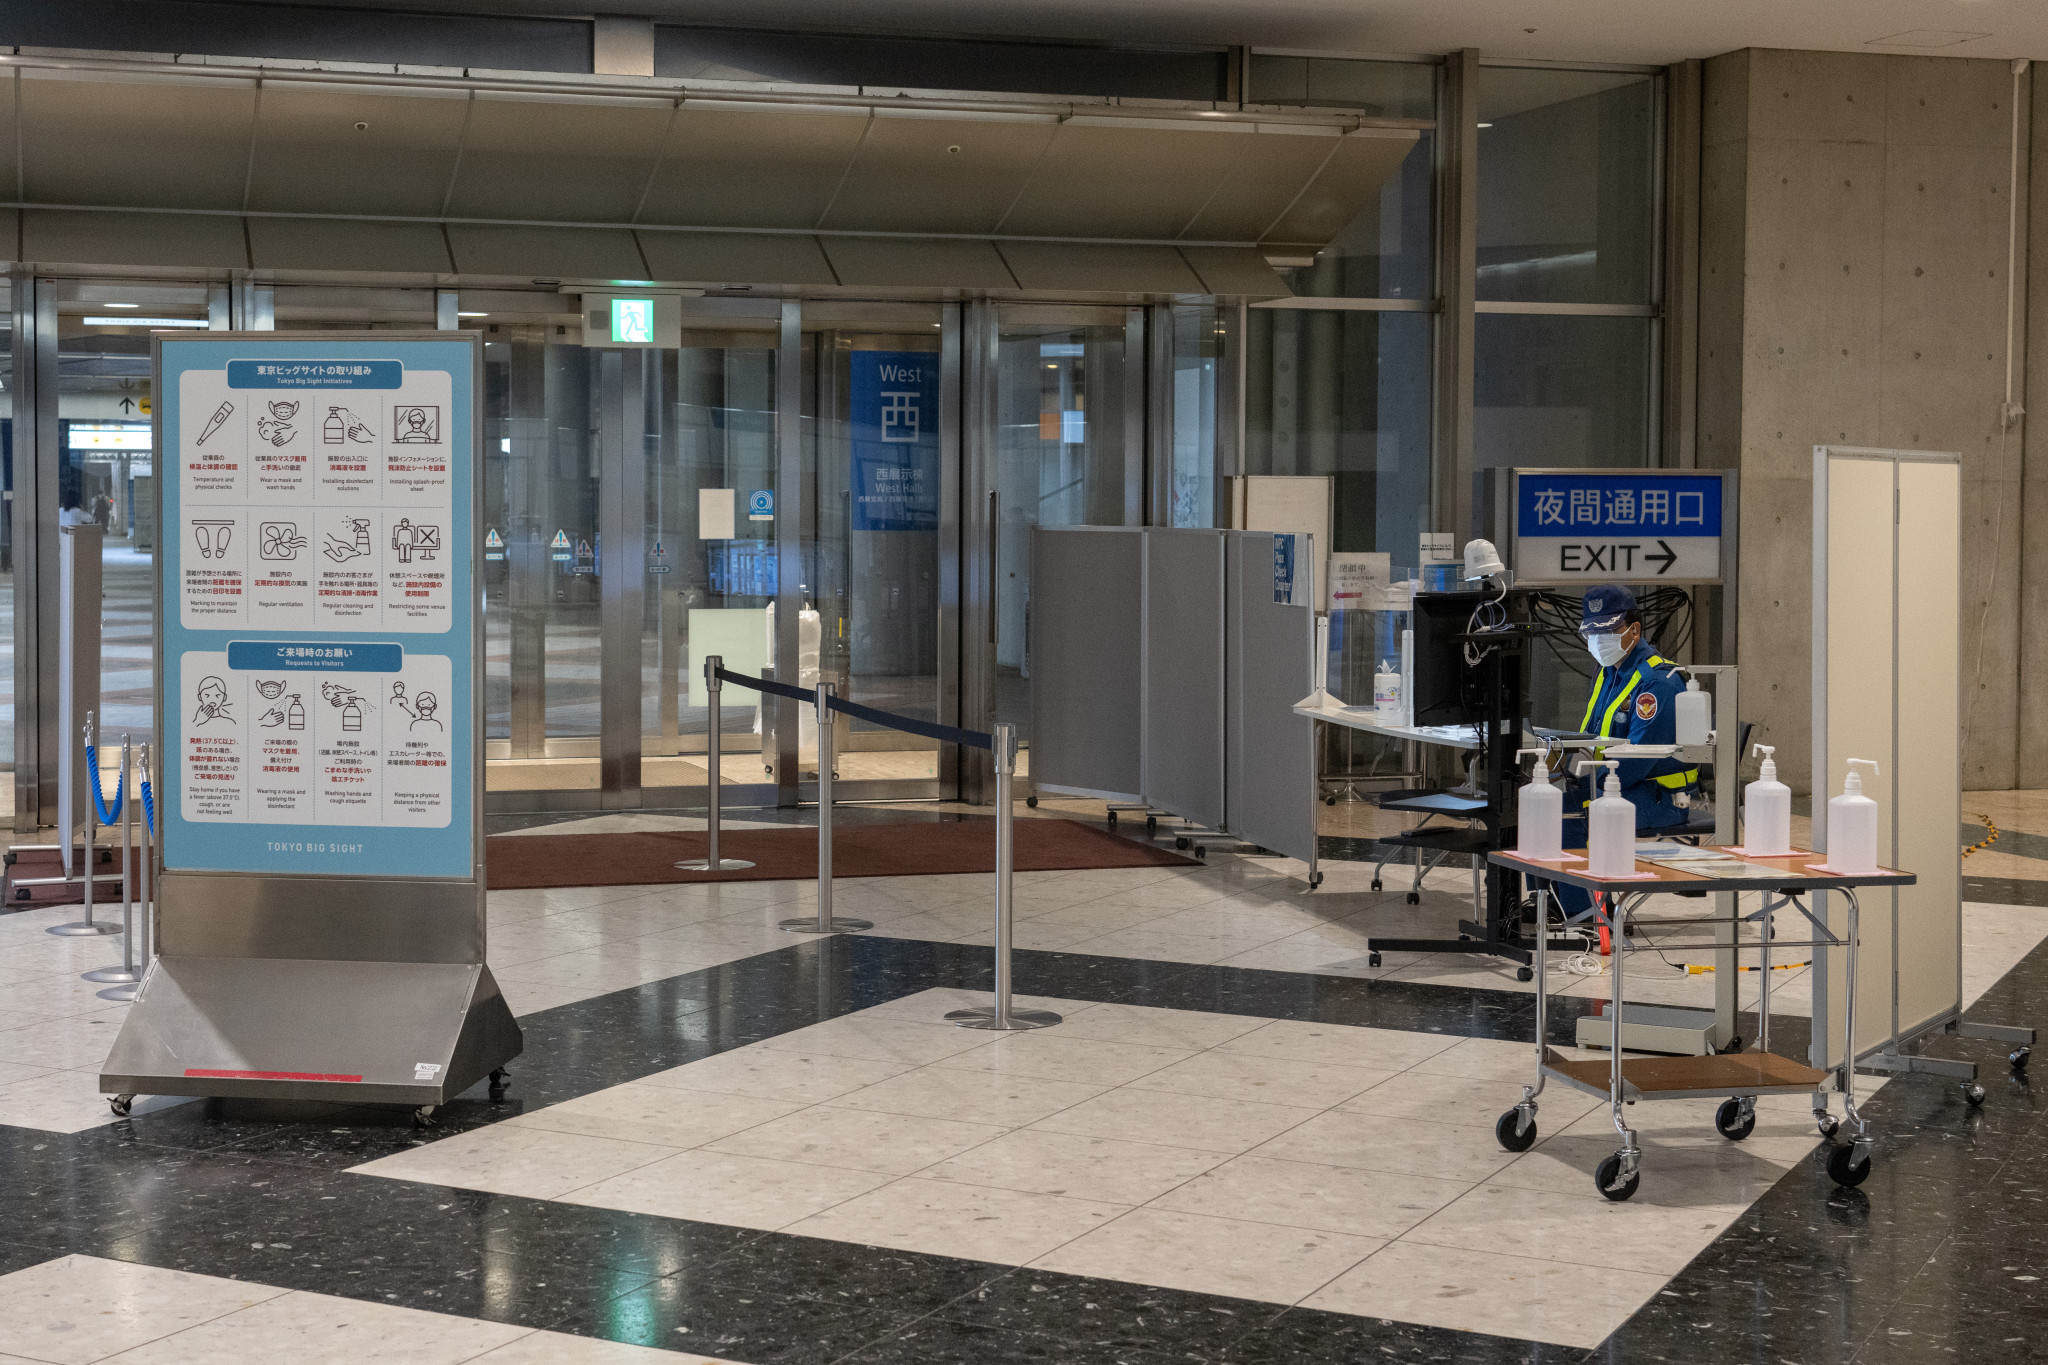 No COVID-19 cases among 500 Games participants who arrived in Tokyo on day playbooks became operational